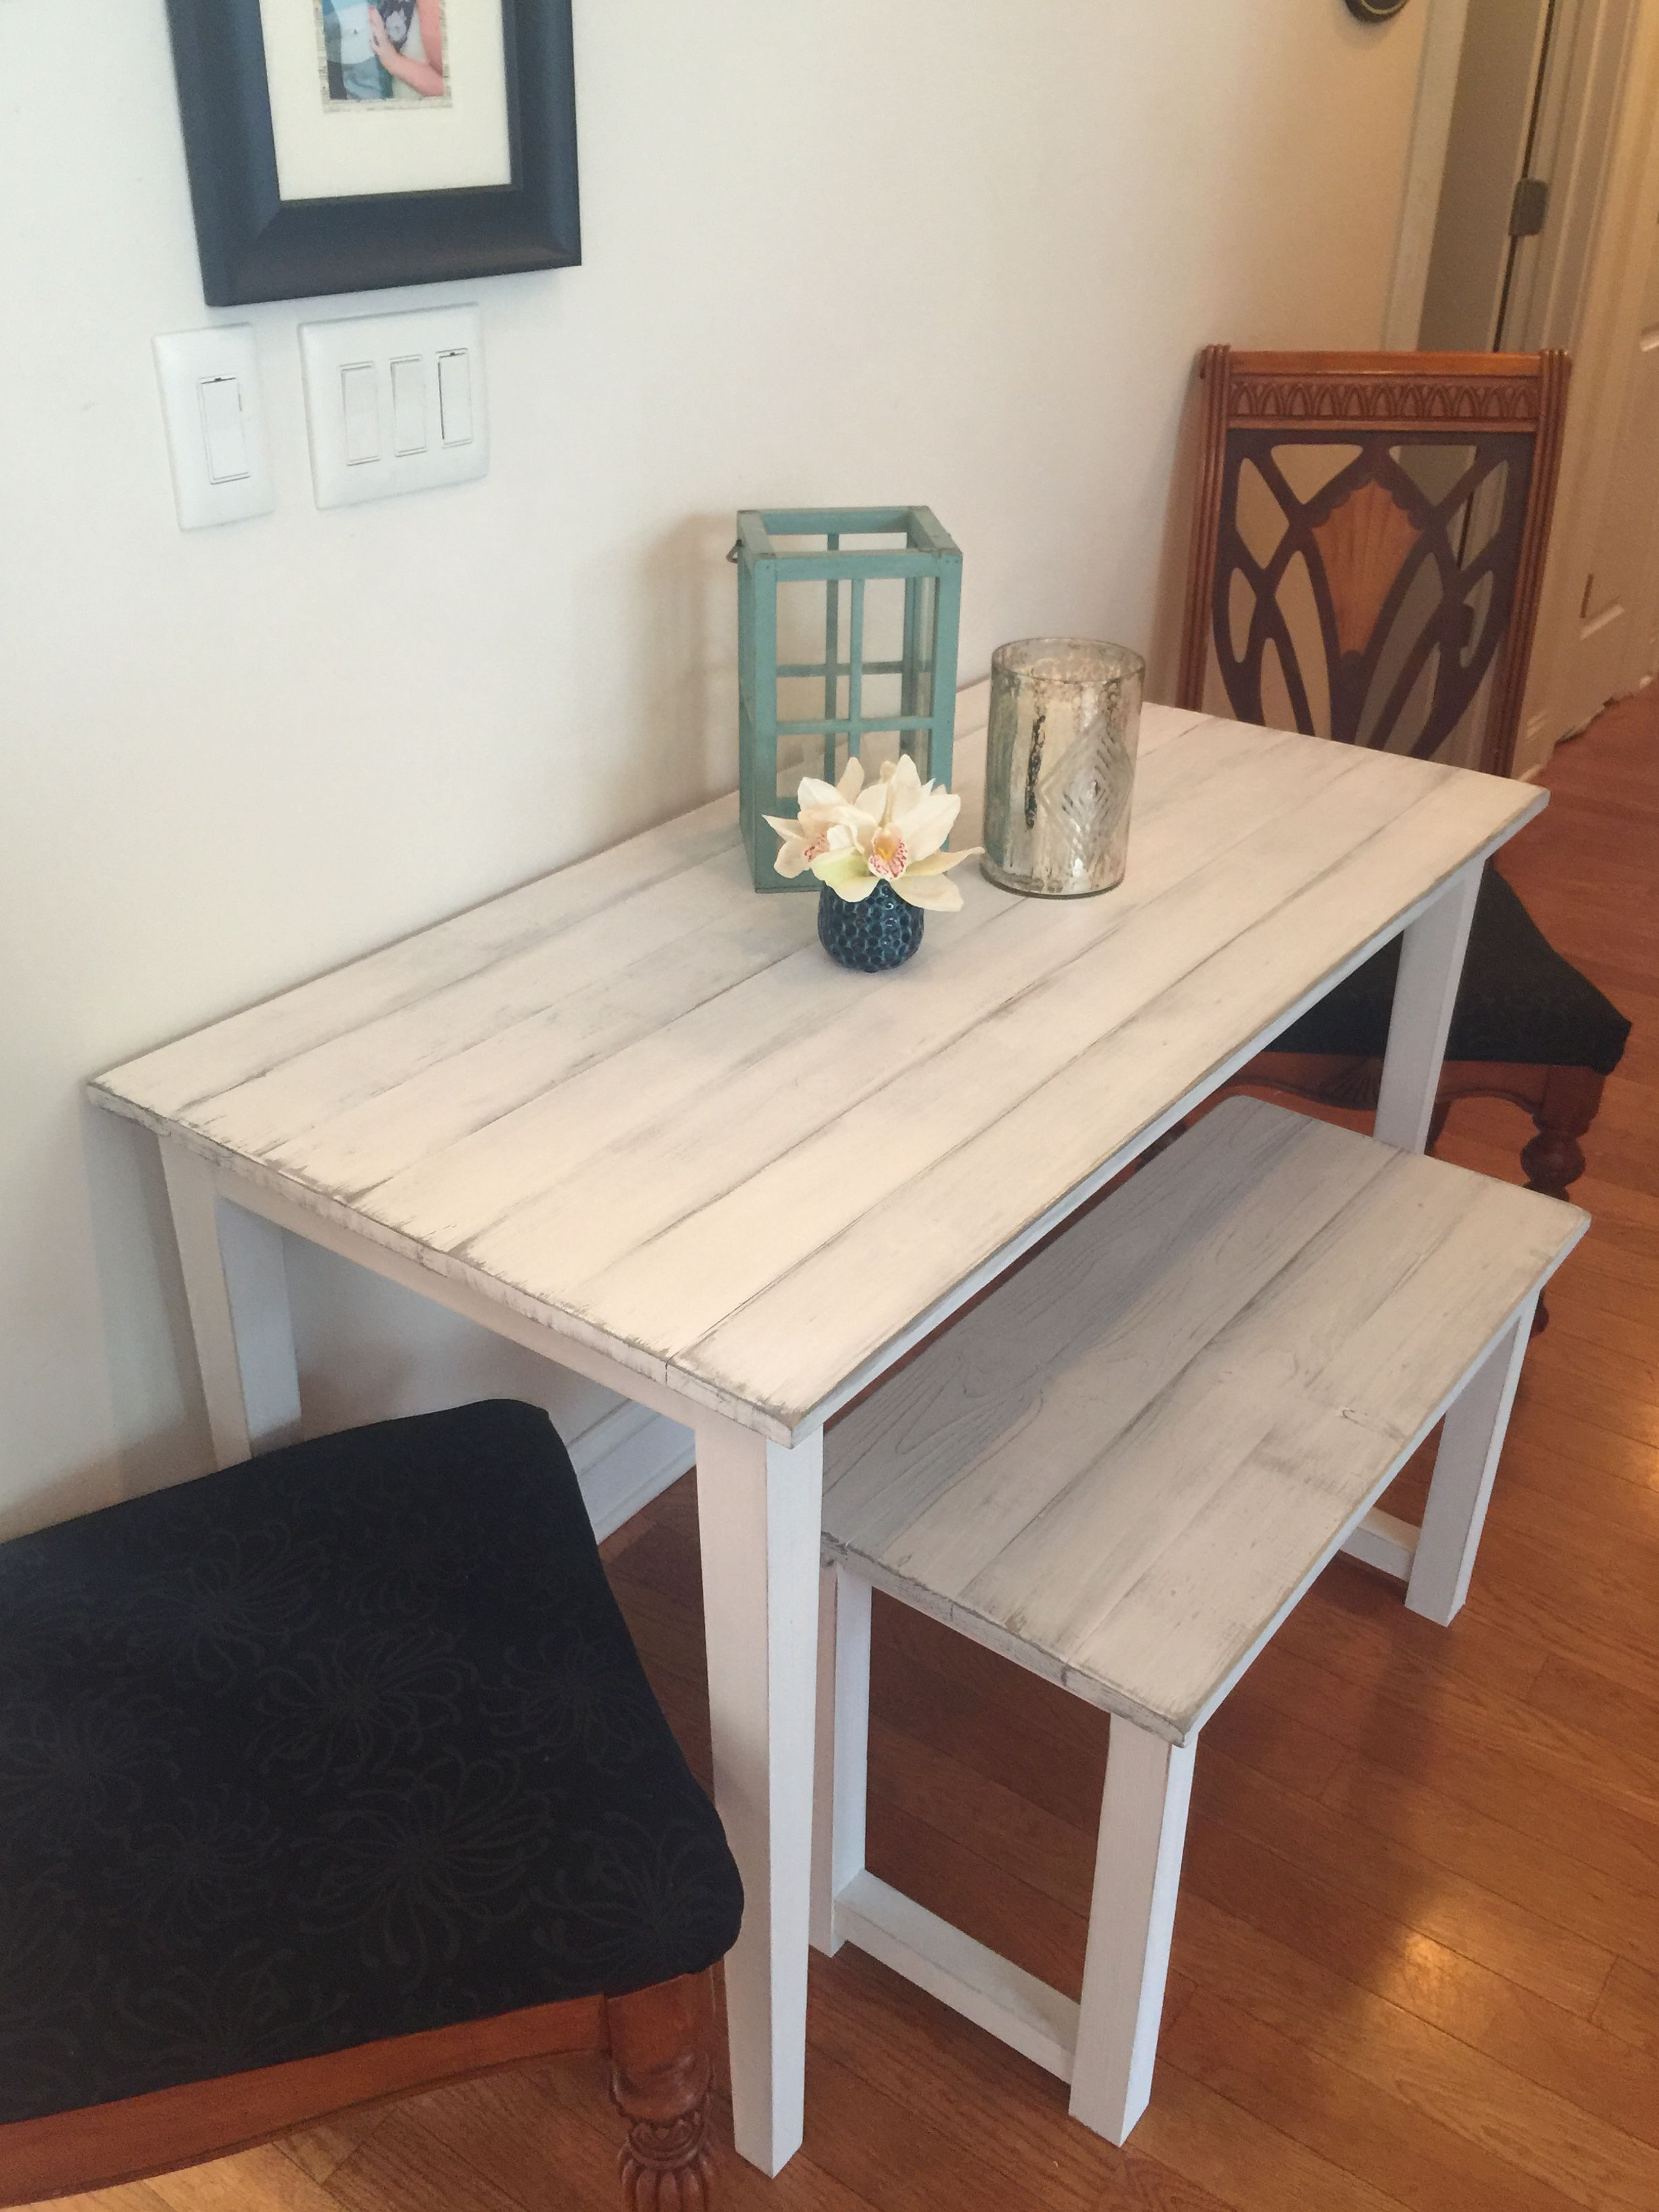 Small Farmhouse Table For Room Bench And Distressed White Washed Wood Decorating A E